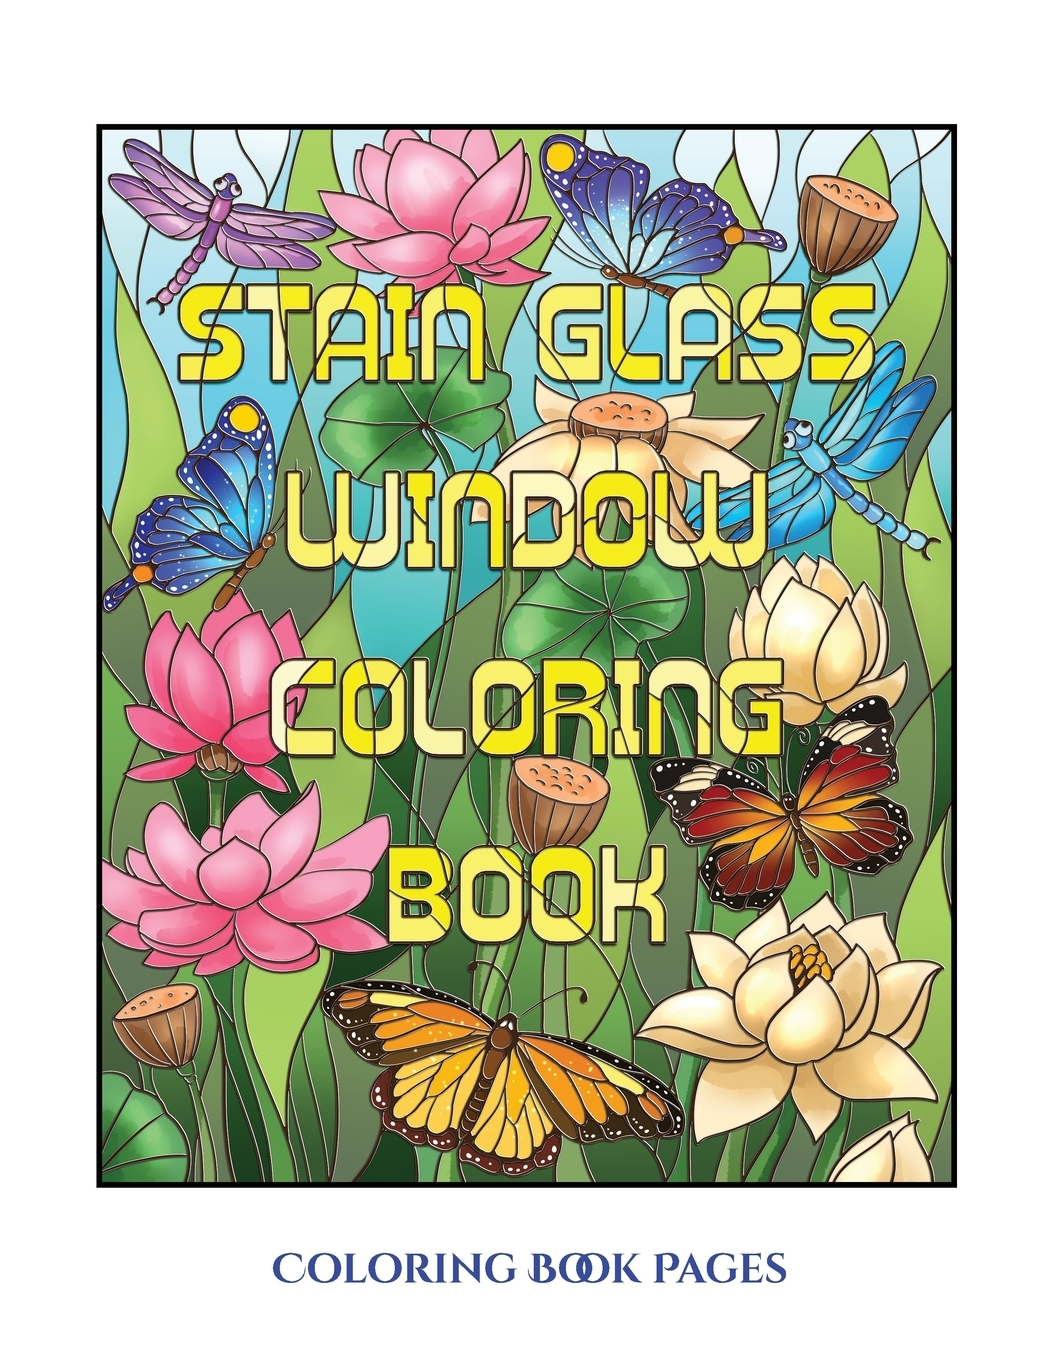 Coloring Book Pages (Stain Glass Window Coloring Book): Advanced Coloring ( Colouring) Books For Adults With 50 Coloring Pages: Stain Glass Window Coloring  Book (Adult Colouring (Coloring) Books) (Pape - Walmart.com - Walmart.com